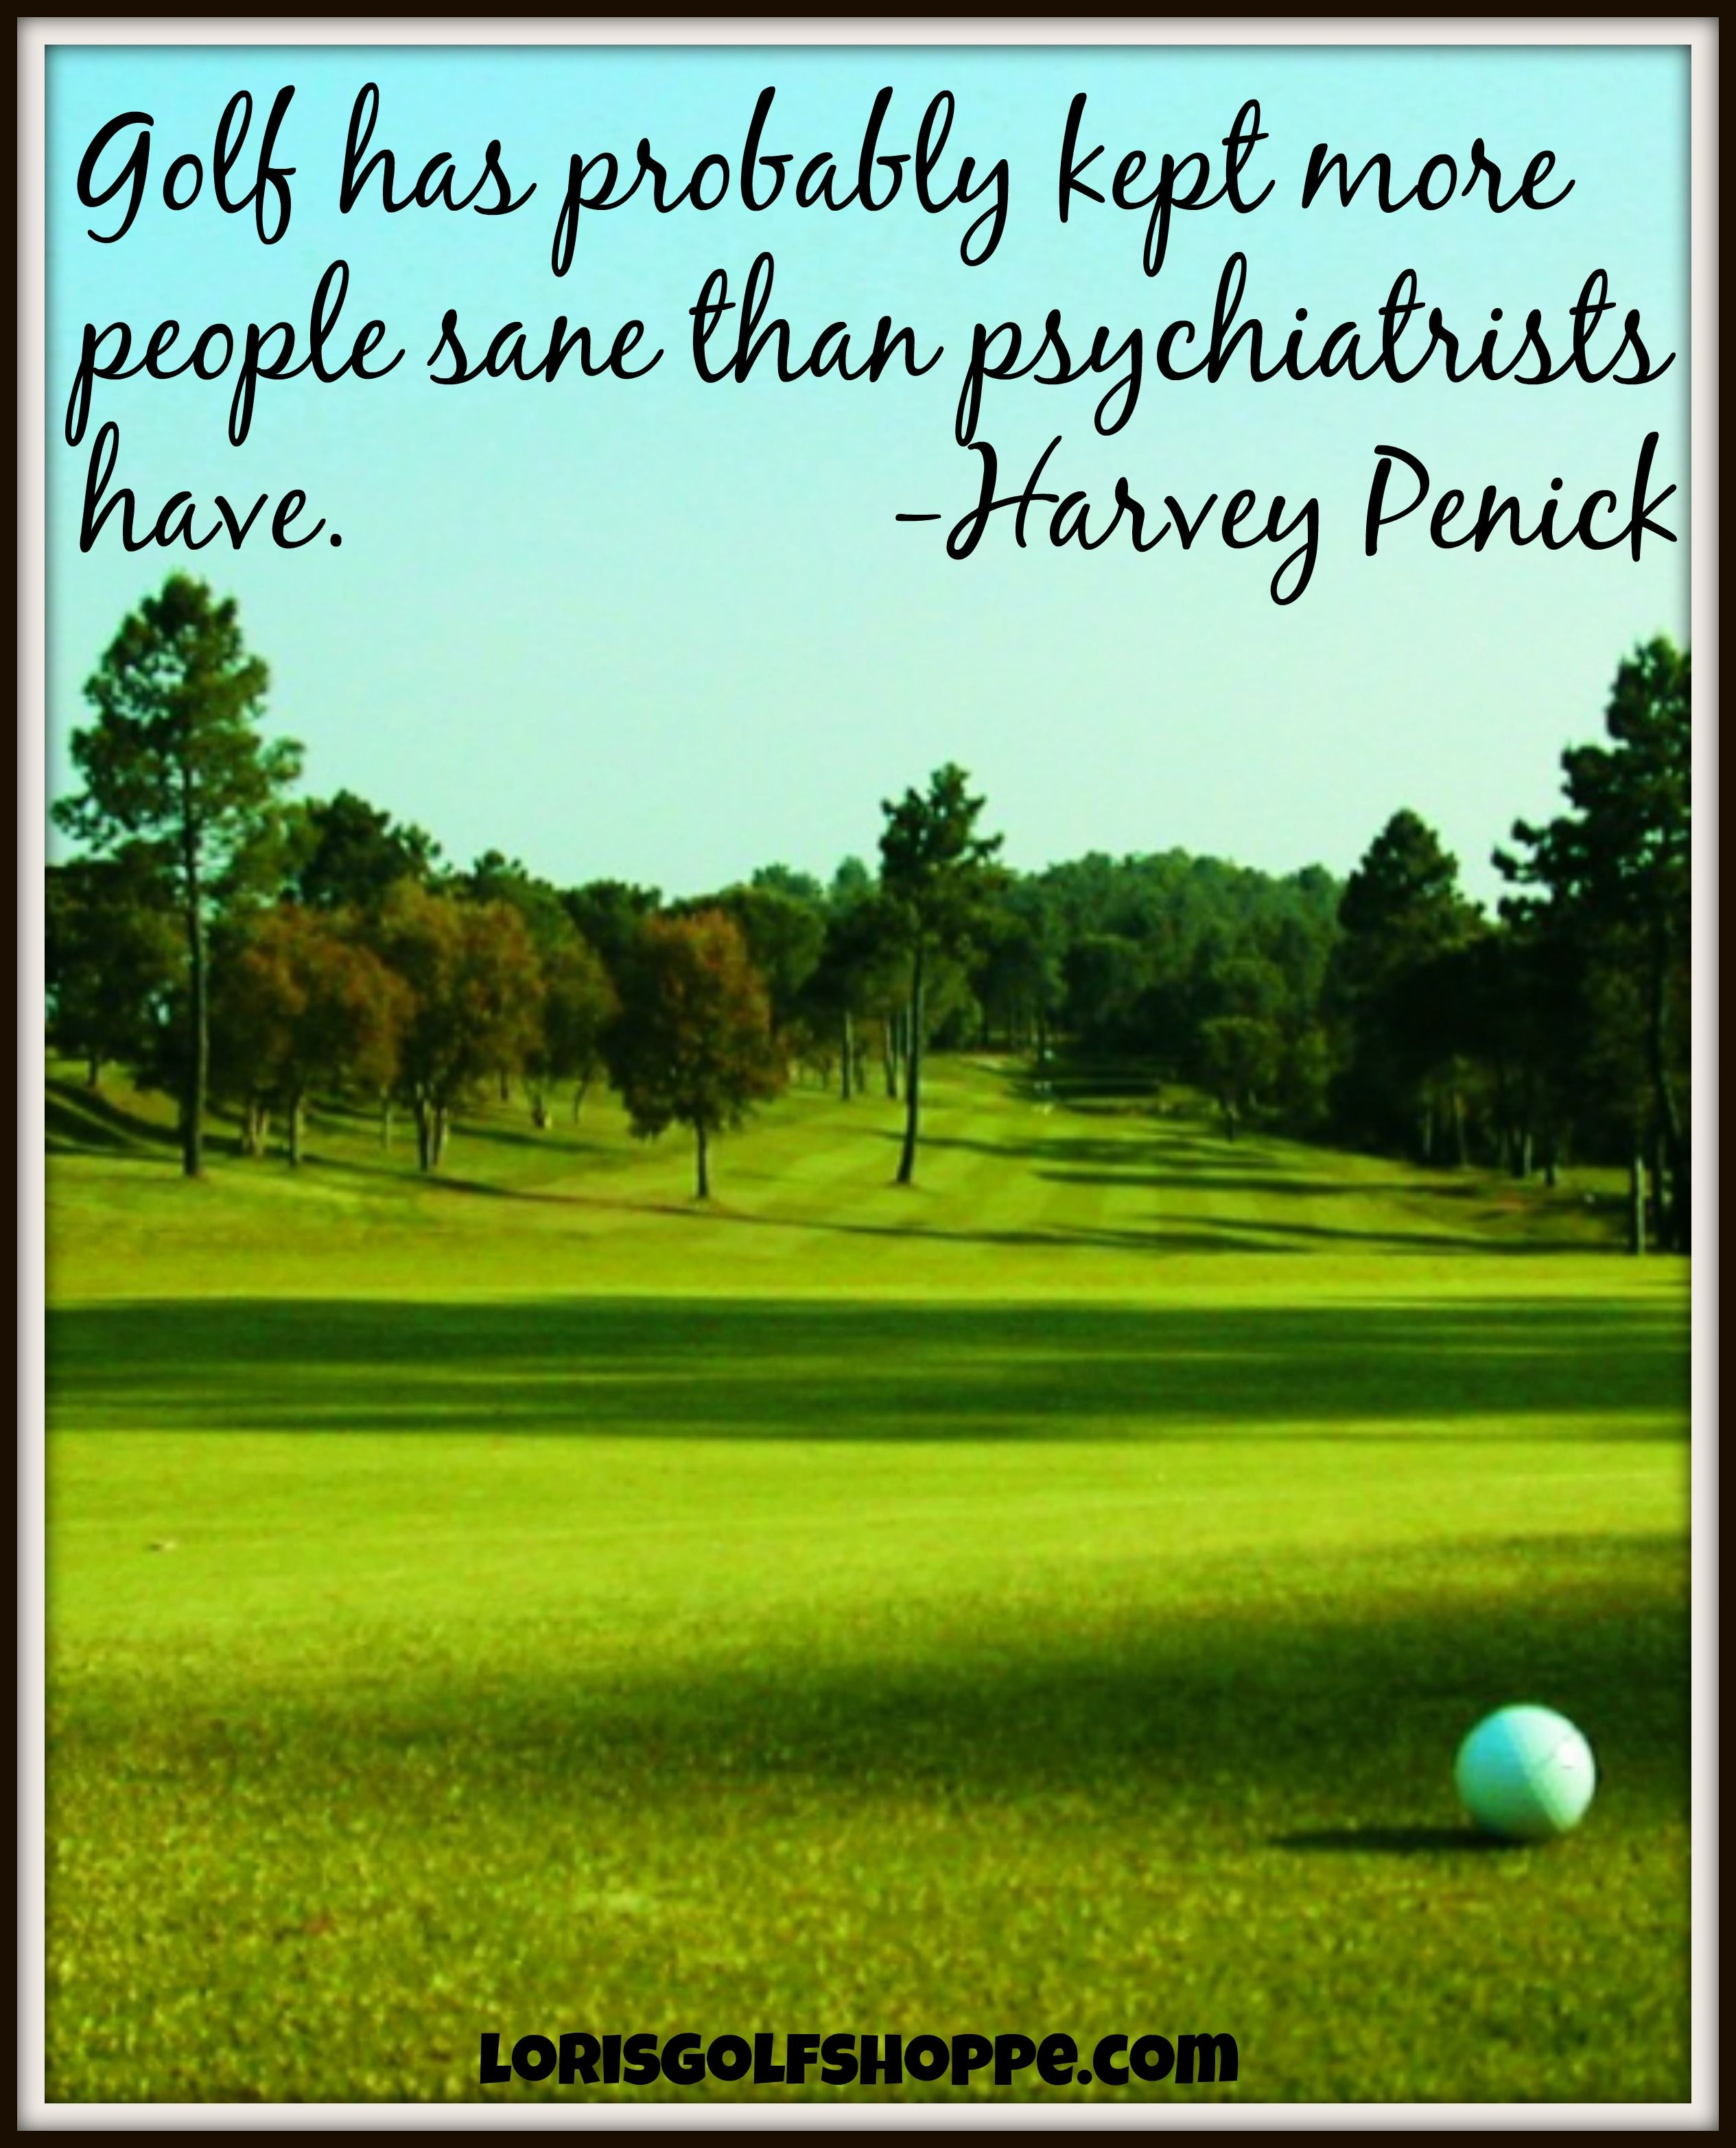 Famous Golf Quotes Ha Do You Agree With Harvey Penick Golf Quotes